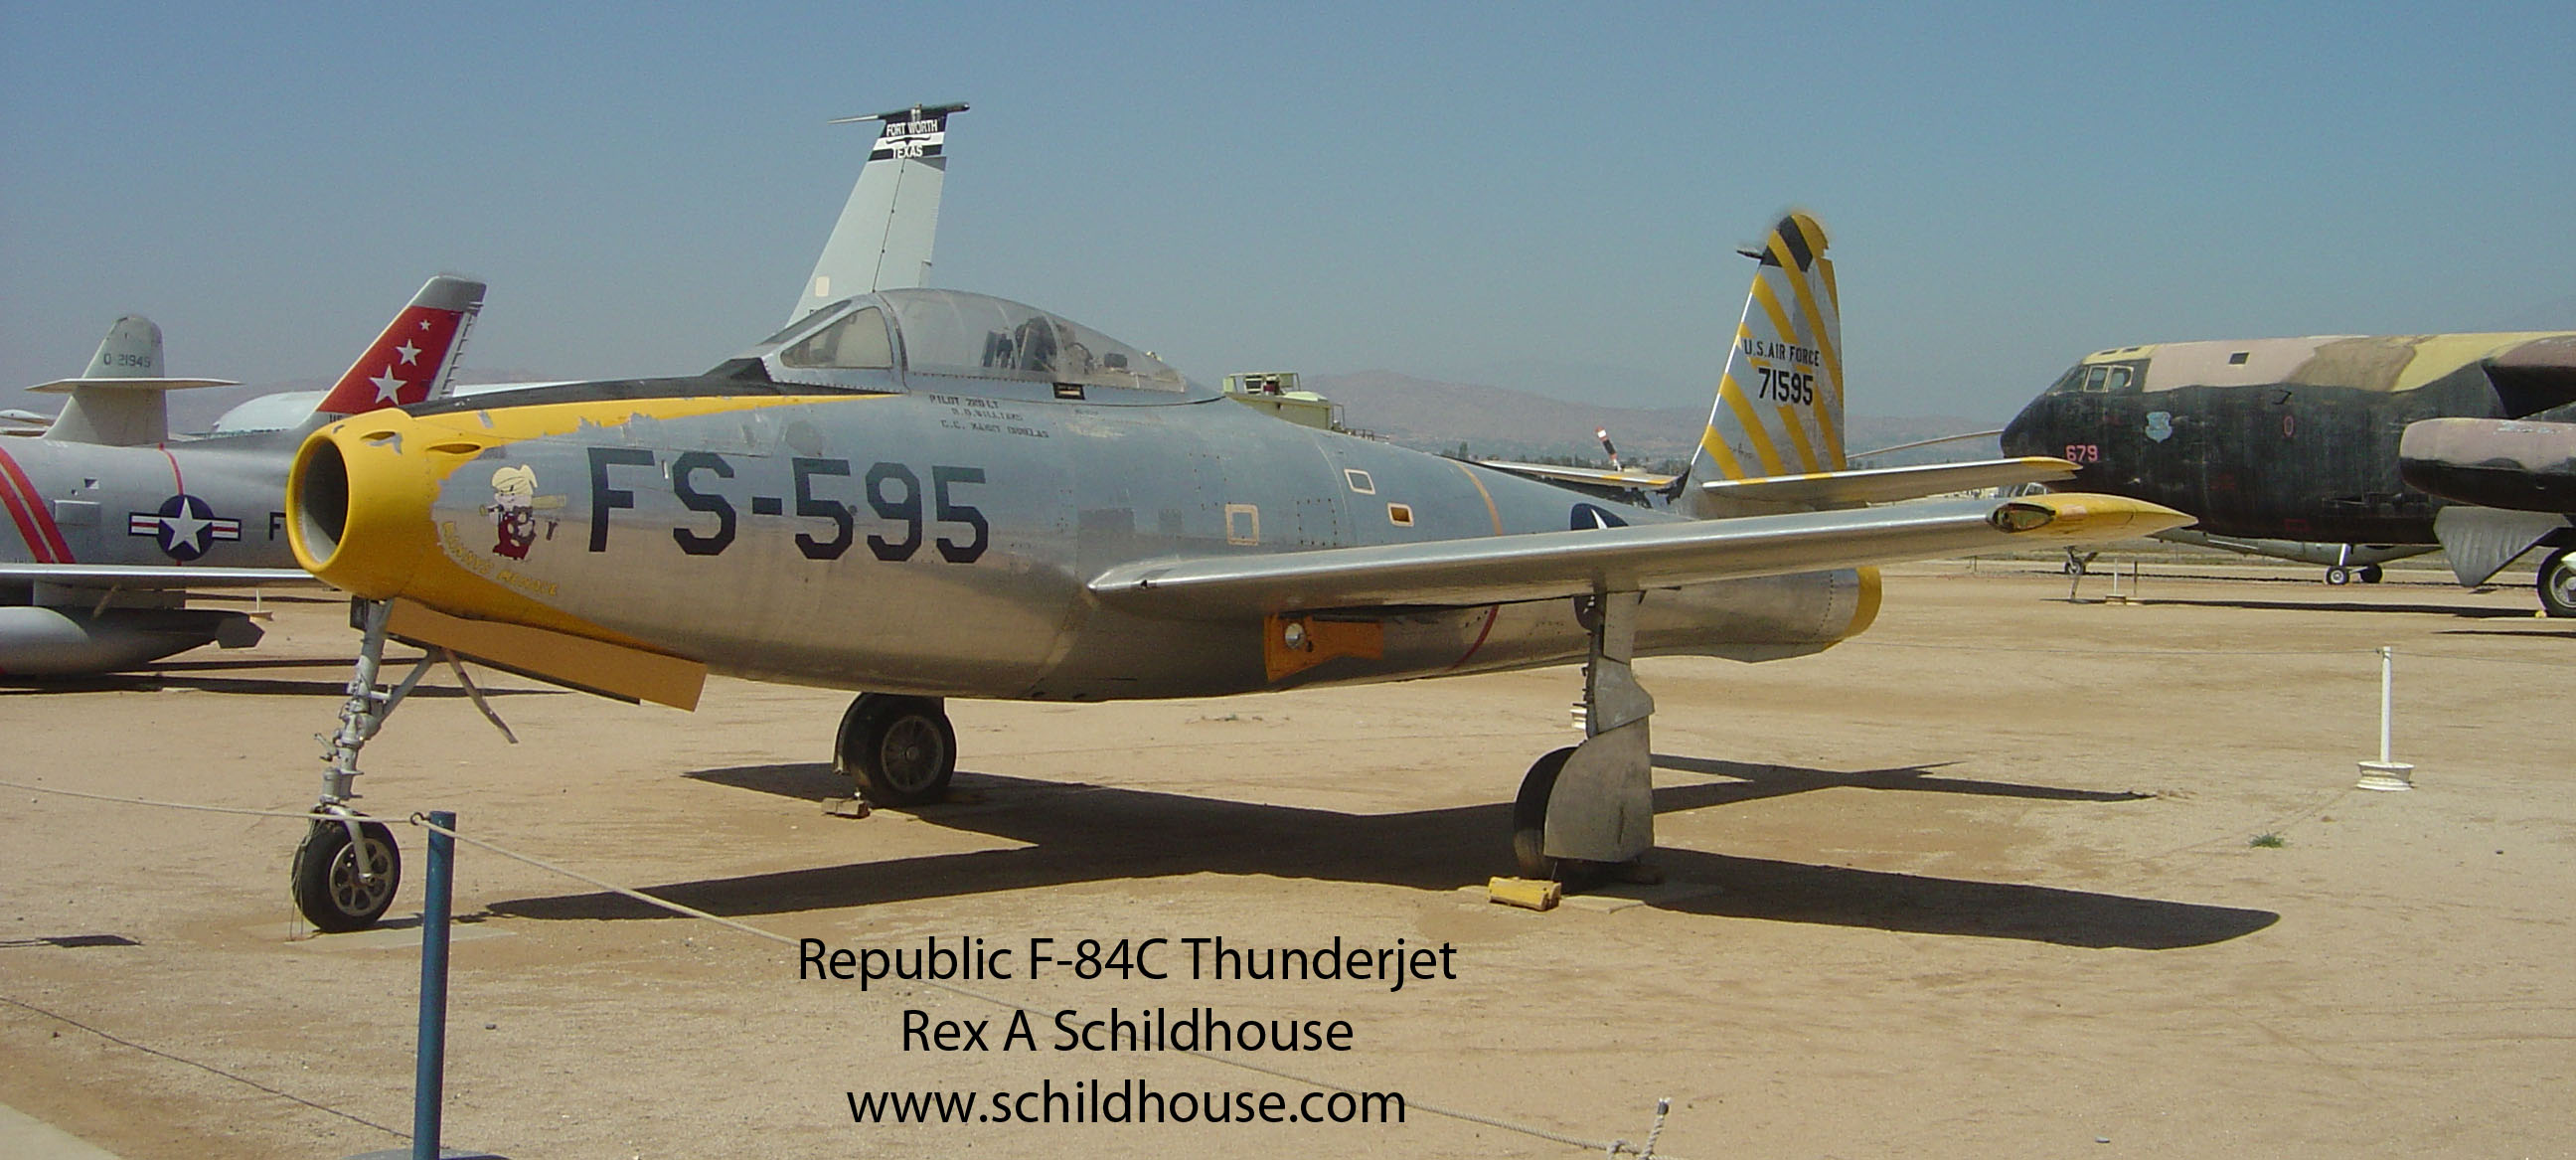 Republic F-84C Thunderjet